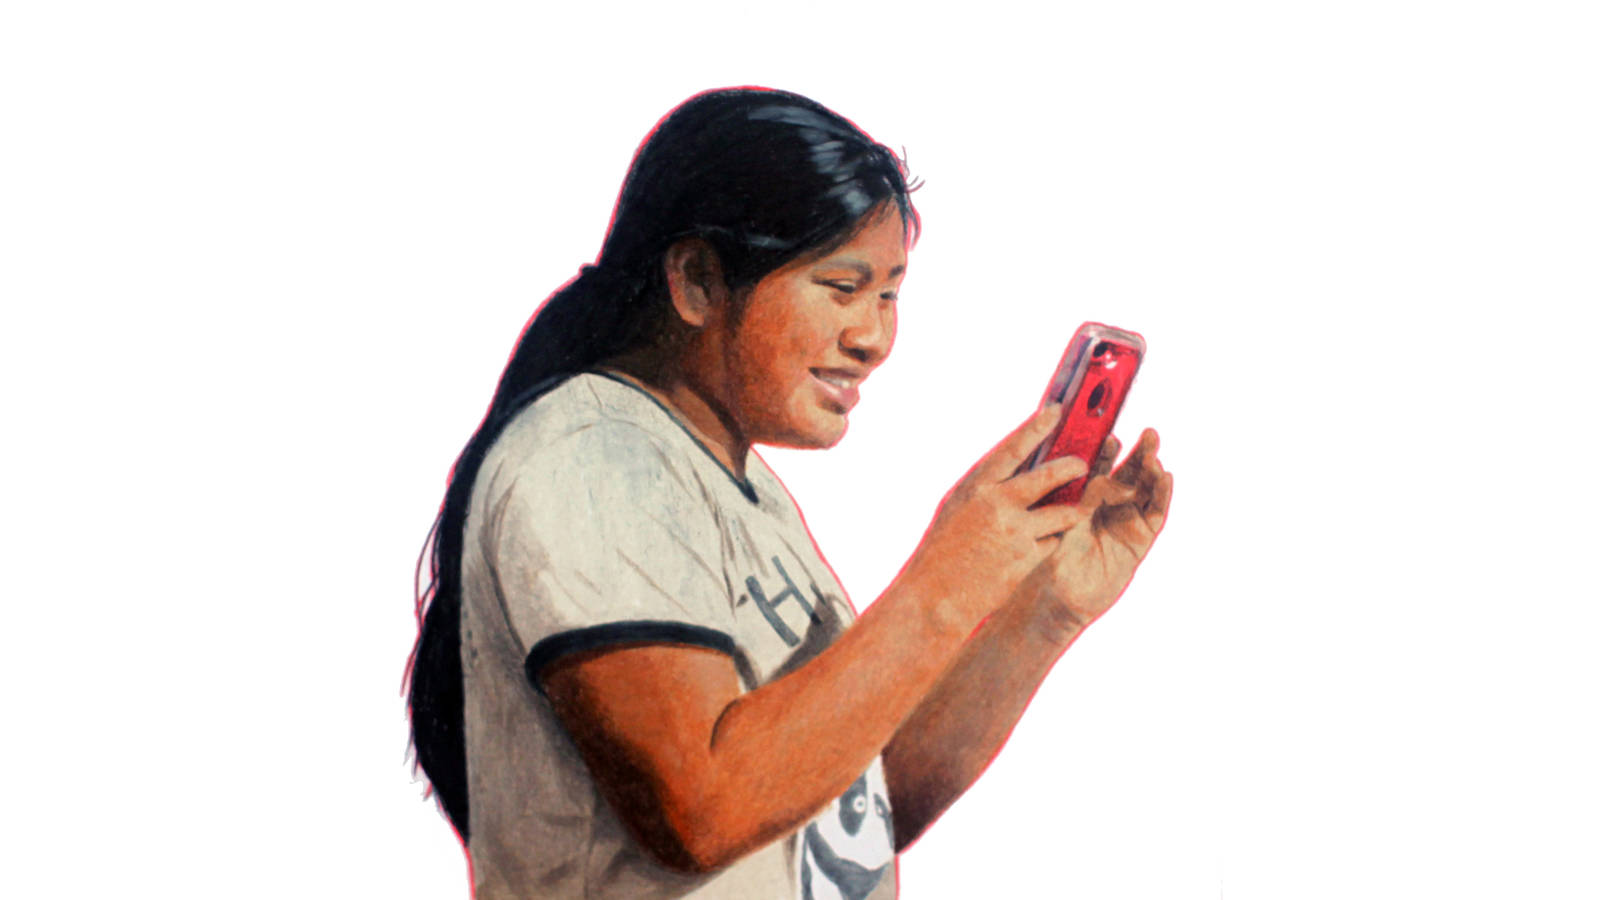 """<h3 style=""""text-align: center; padding: 50px;""""><span class=""""text-Intro-style"""">A visitor at Big Cypress National Preserve in Florida. Colored pencil on paper, 2020.</span></h3>"""